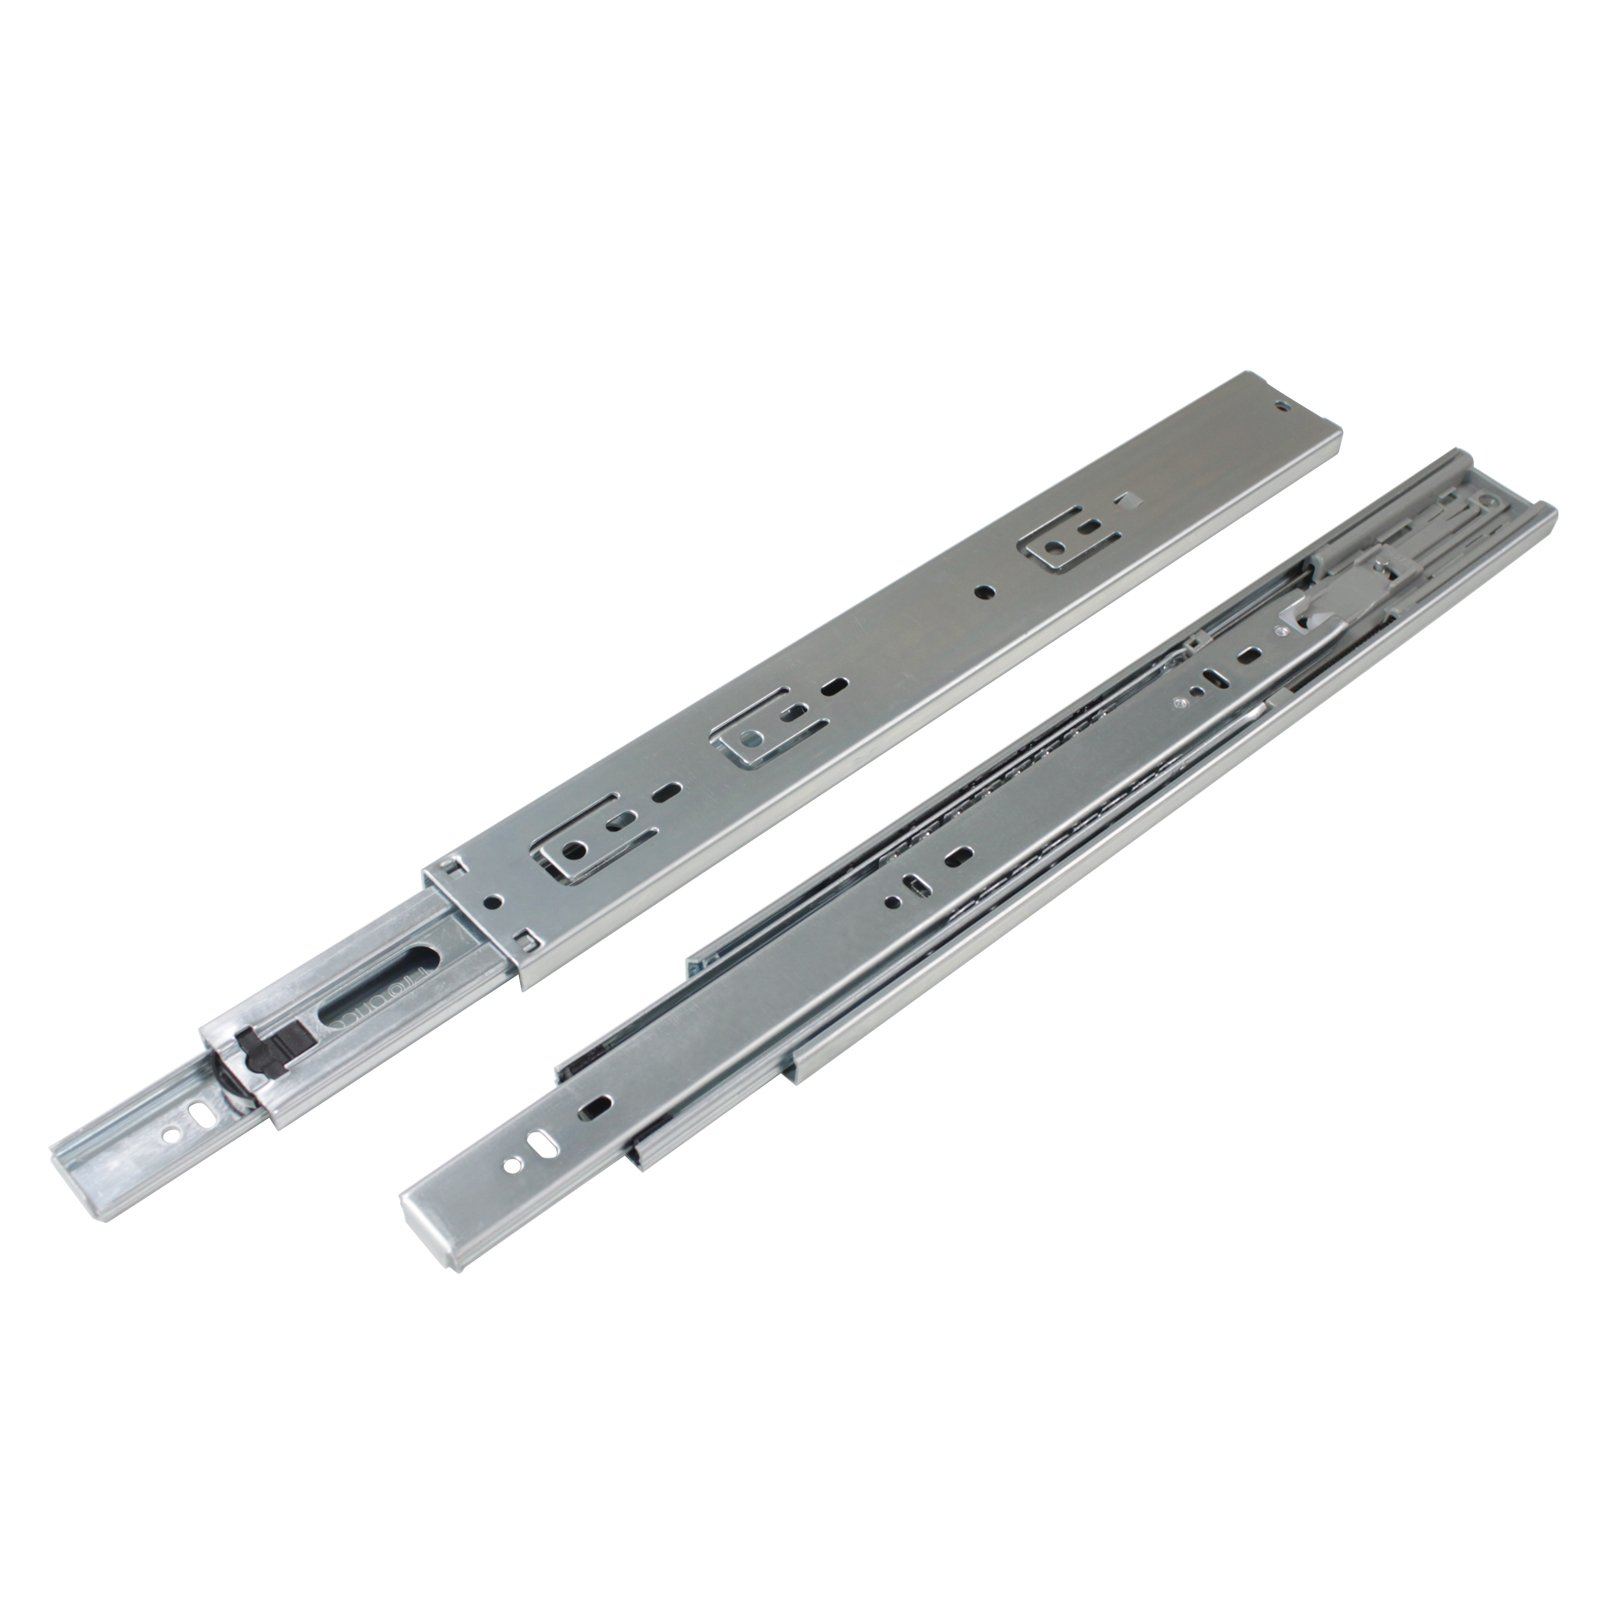 Gobrico Rear/Under Mounting Drawer Slides With Brackets Soft Closing Ball Bearing 100 Lb Glides Runners Full Extension 22in 5Pairs by Gobrico (Image #3)